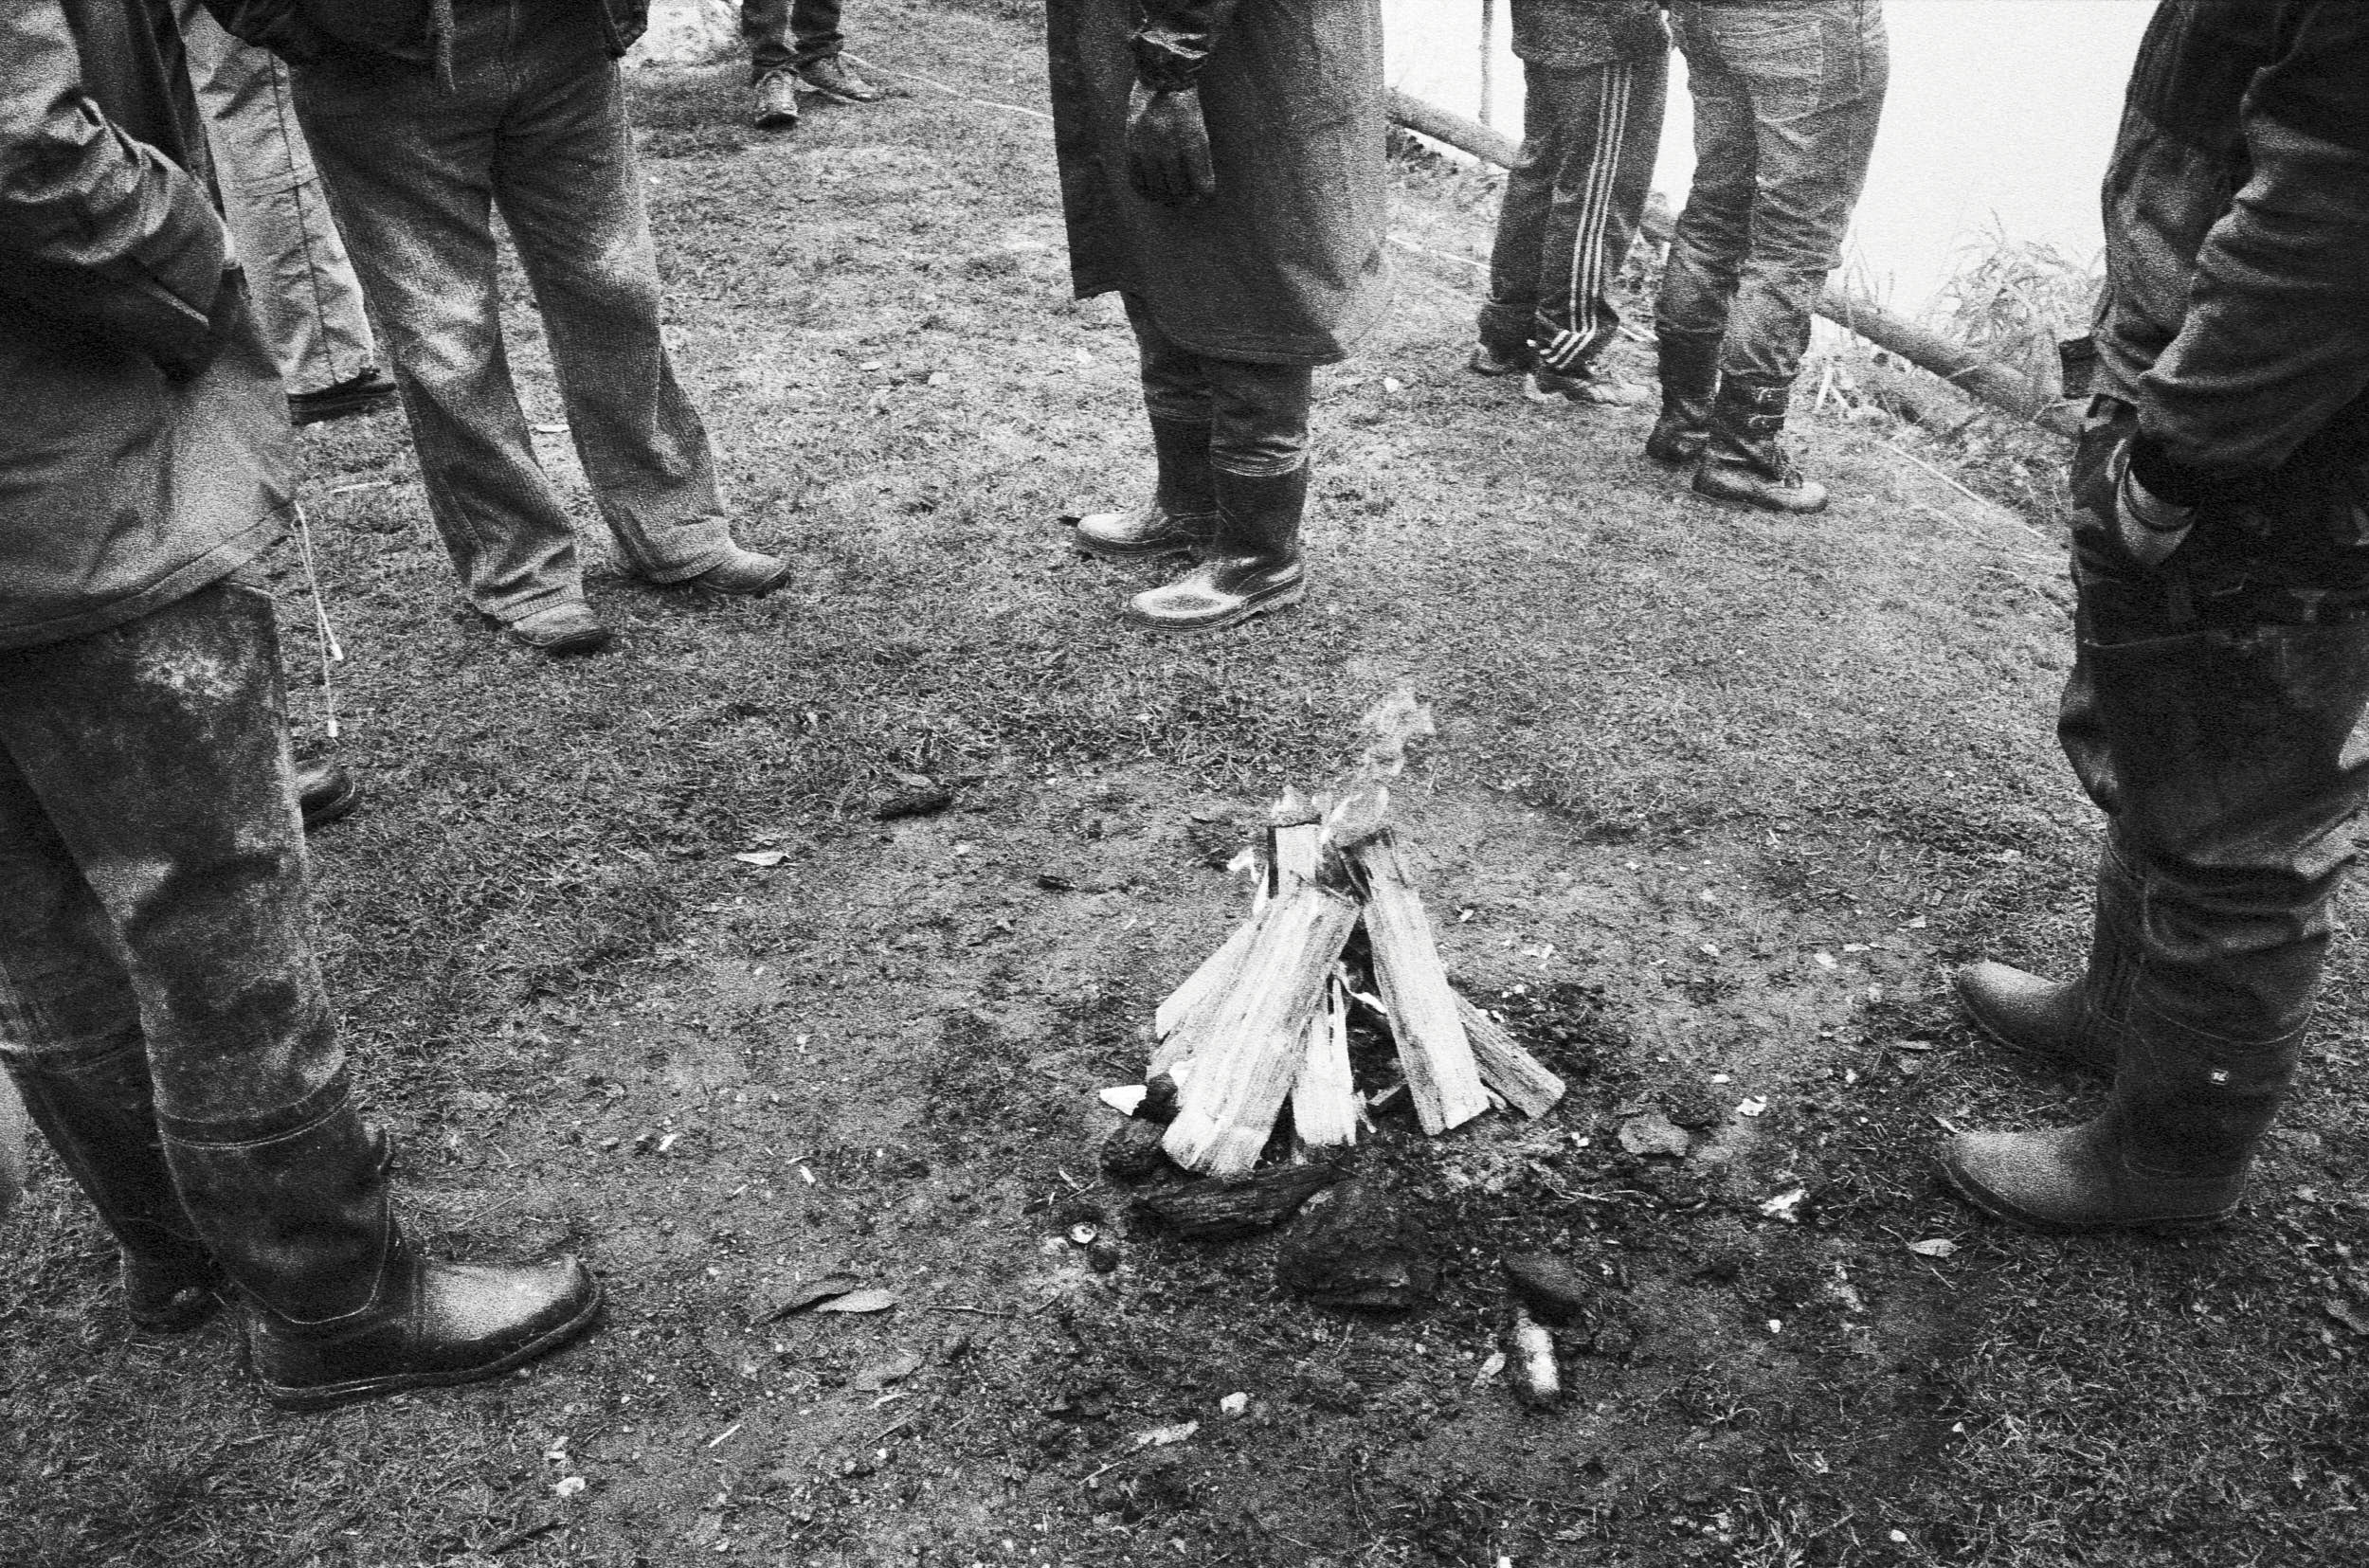 Group of people in wellington boots gathering around a campfire in a black and white documentary photograph.